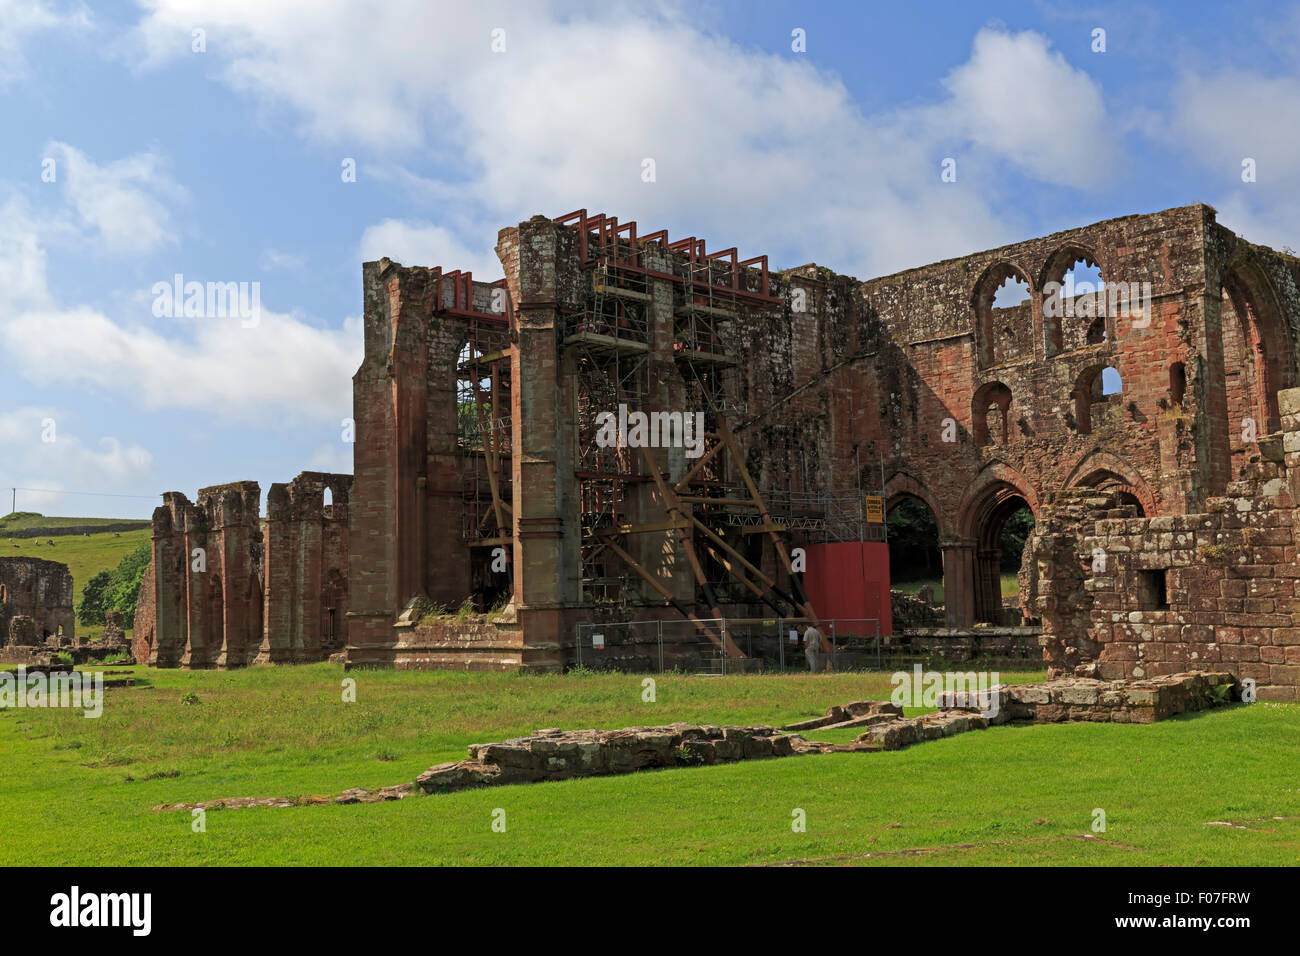 Restoration of the ruins of Furness Abbey, the Church, Cumbria - Stock Image